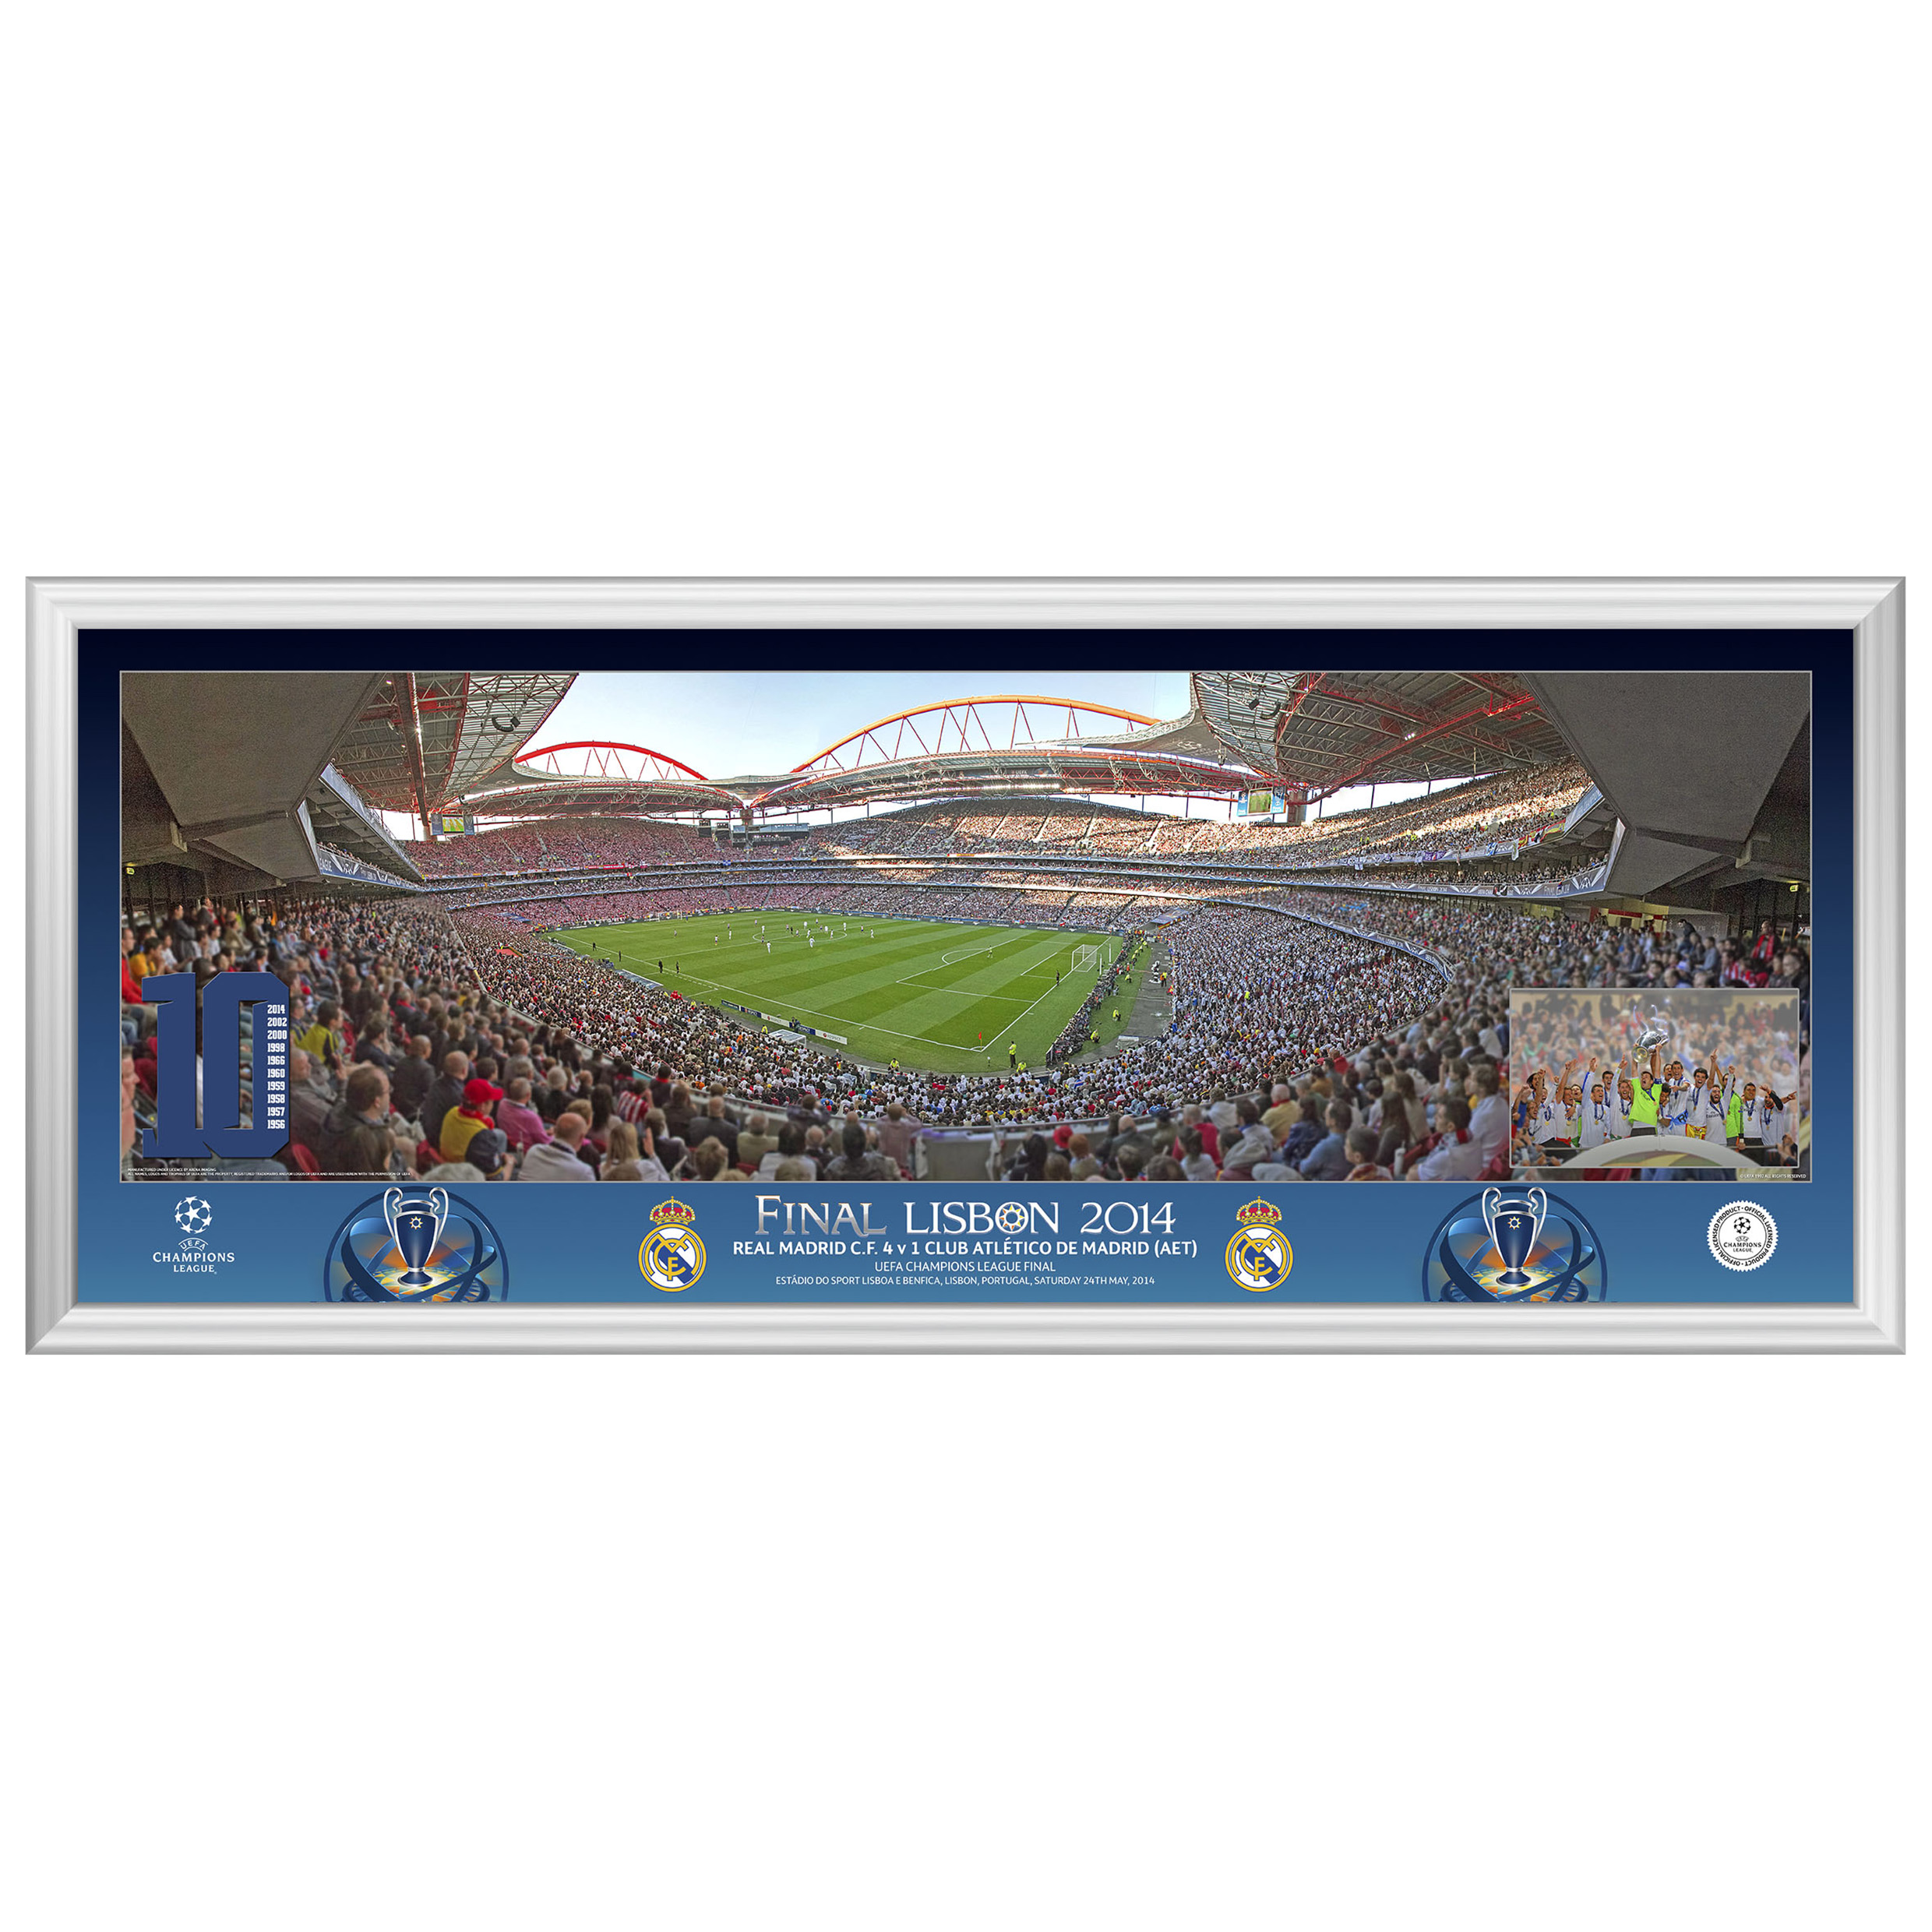 Real Madrid Champions League Final 2014 Match Panoramic Print - 30 x 12 Inch